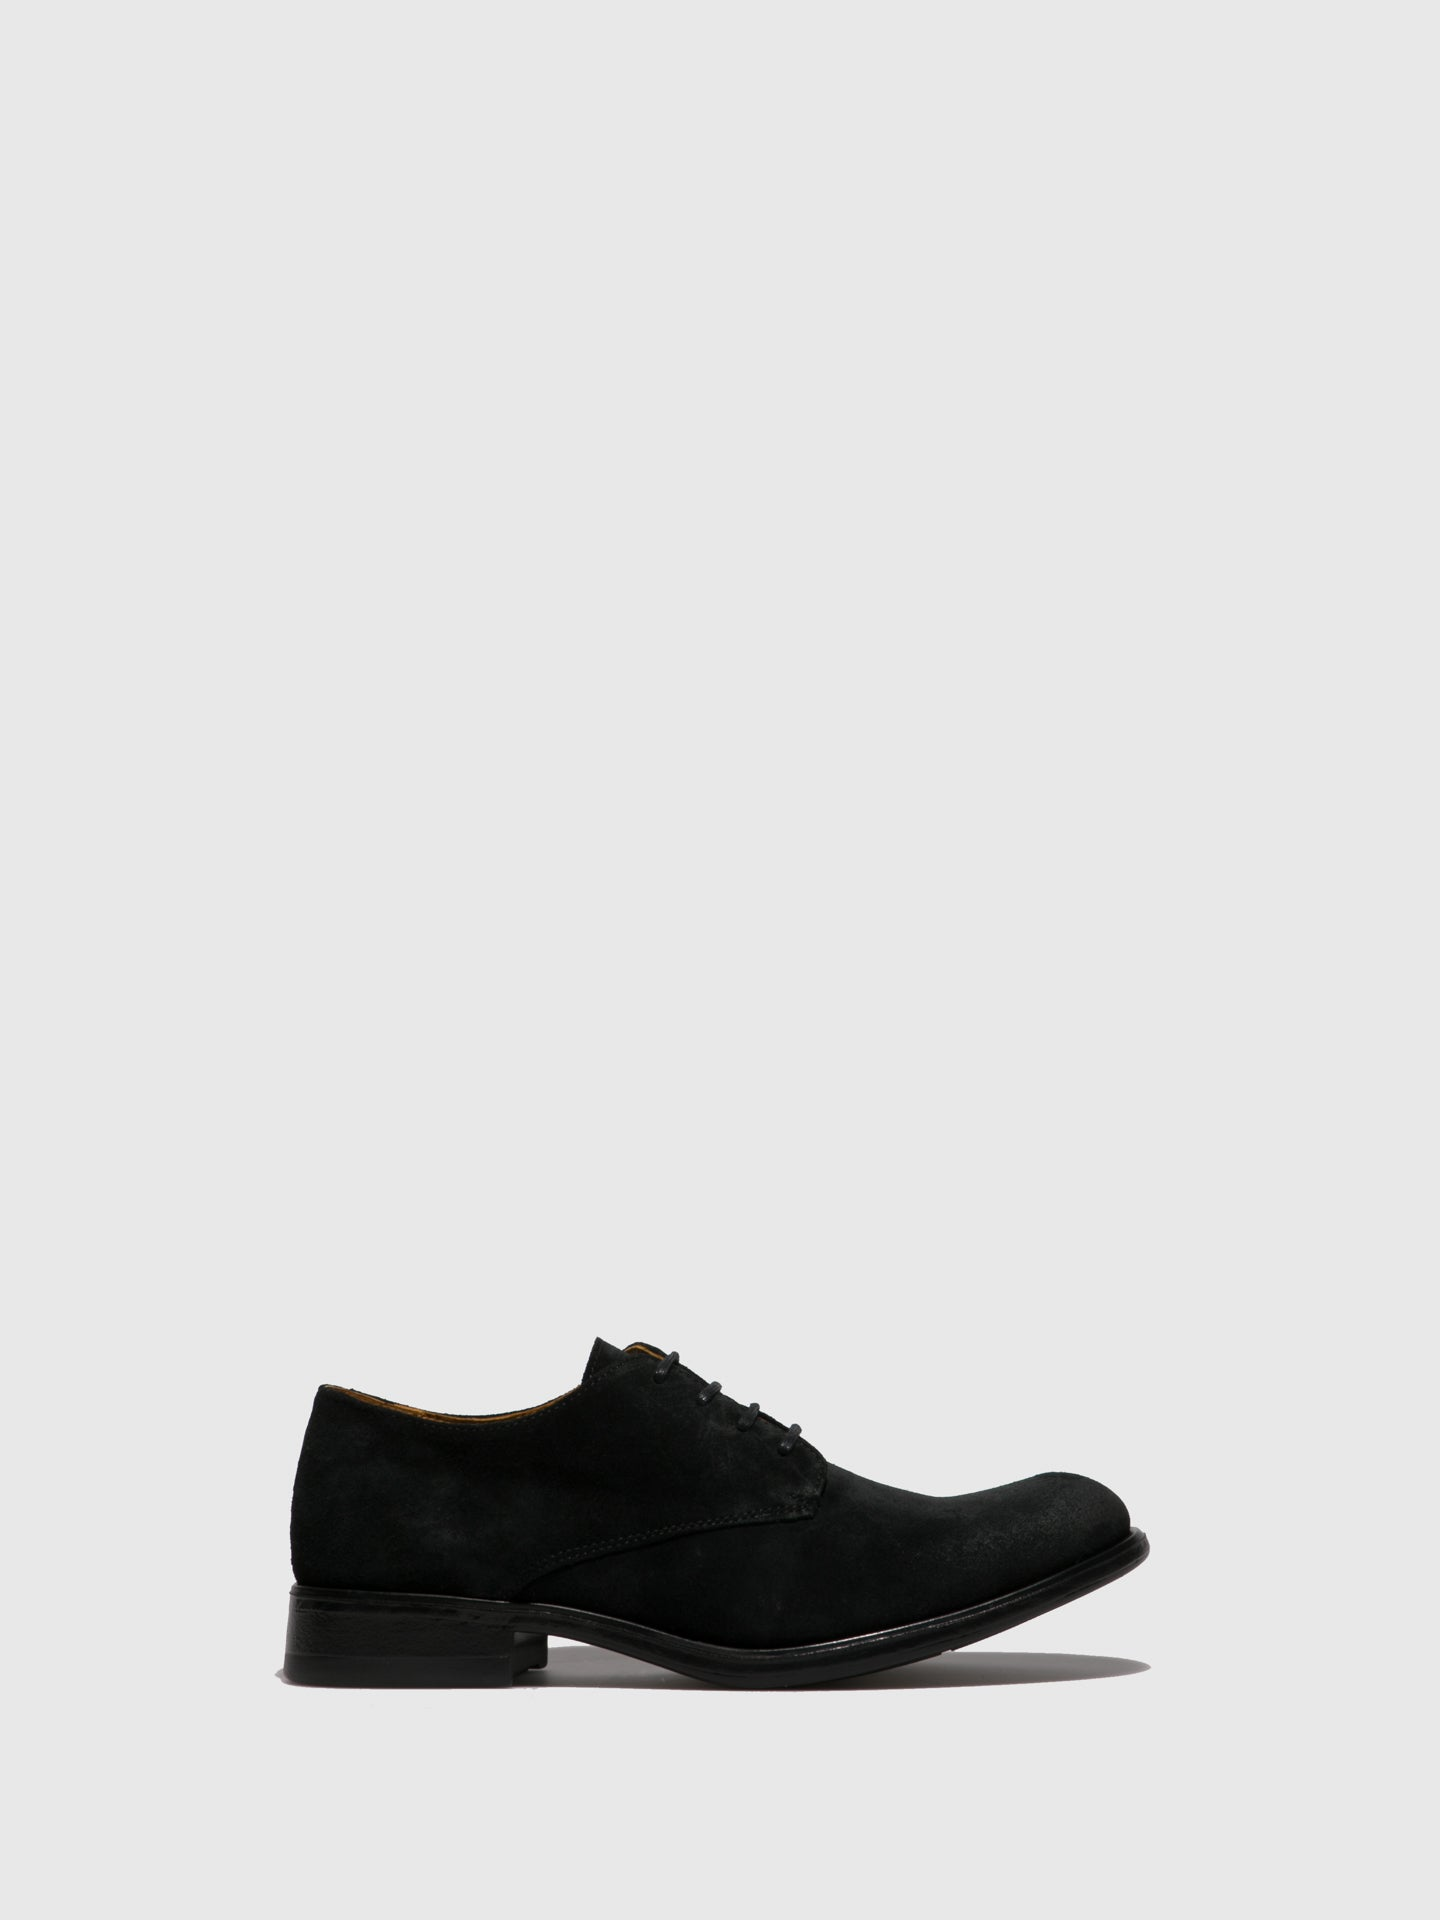 Fly London Black Suede Lace-up Shoes